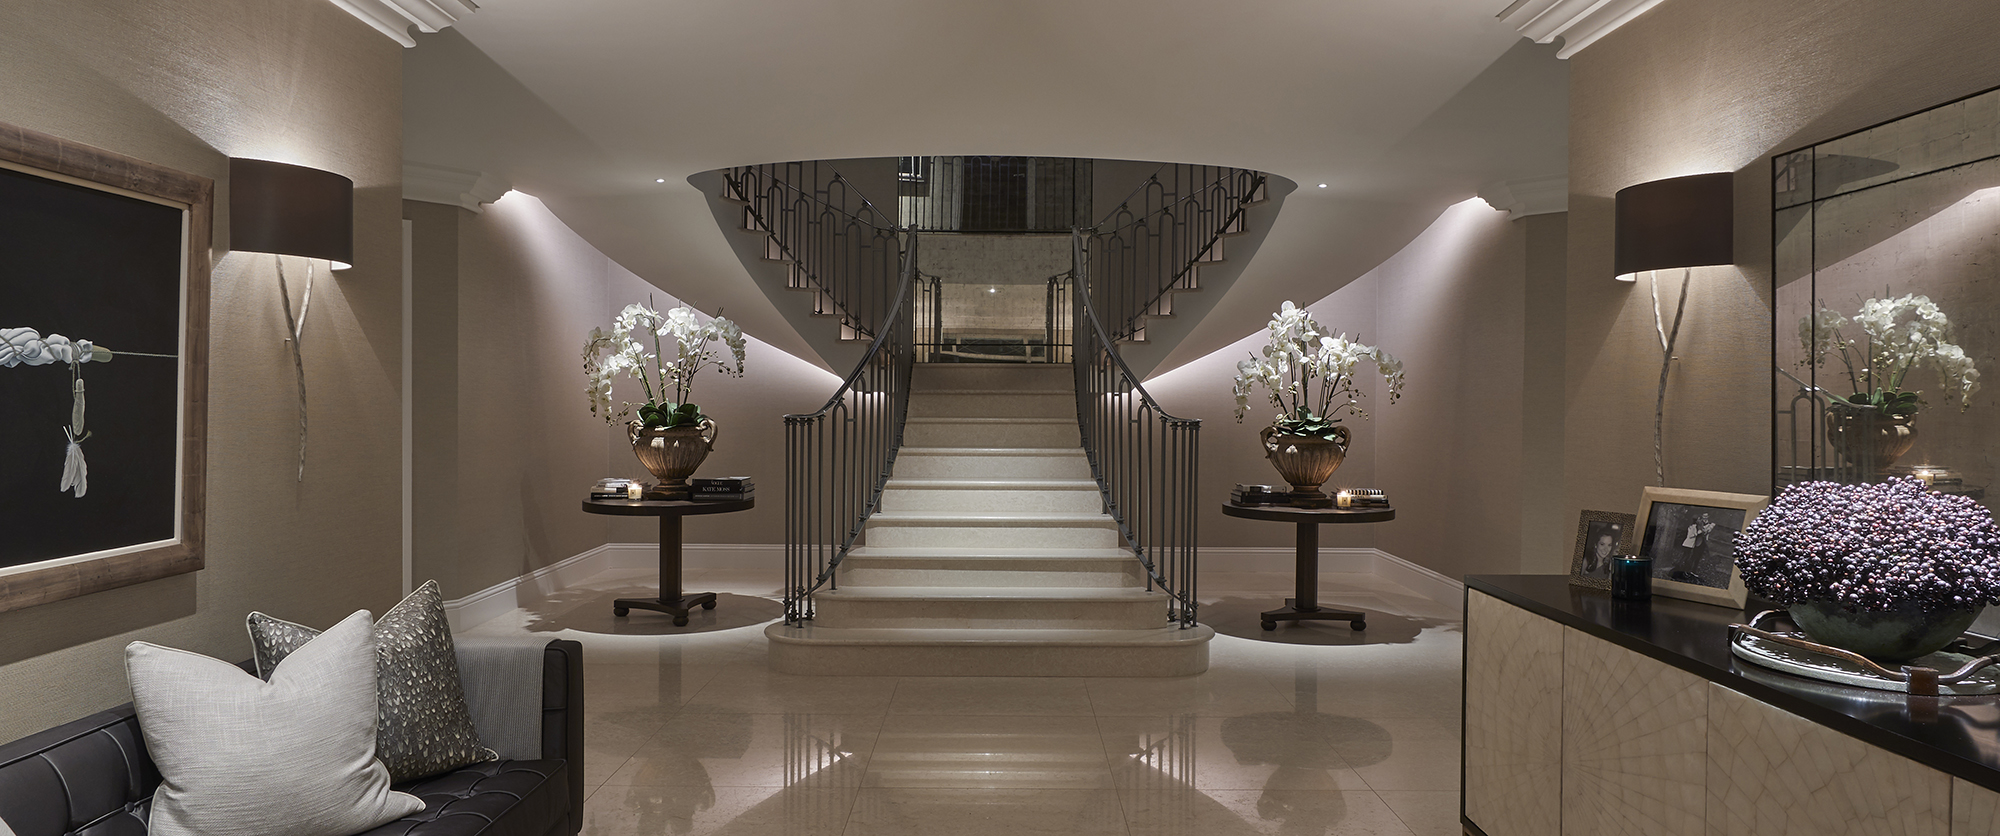 sweeping staircase underlit with linear lighting